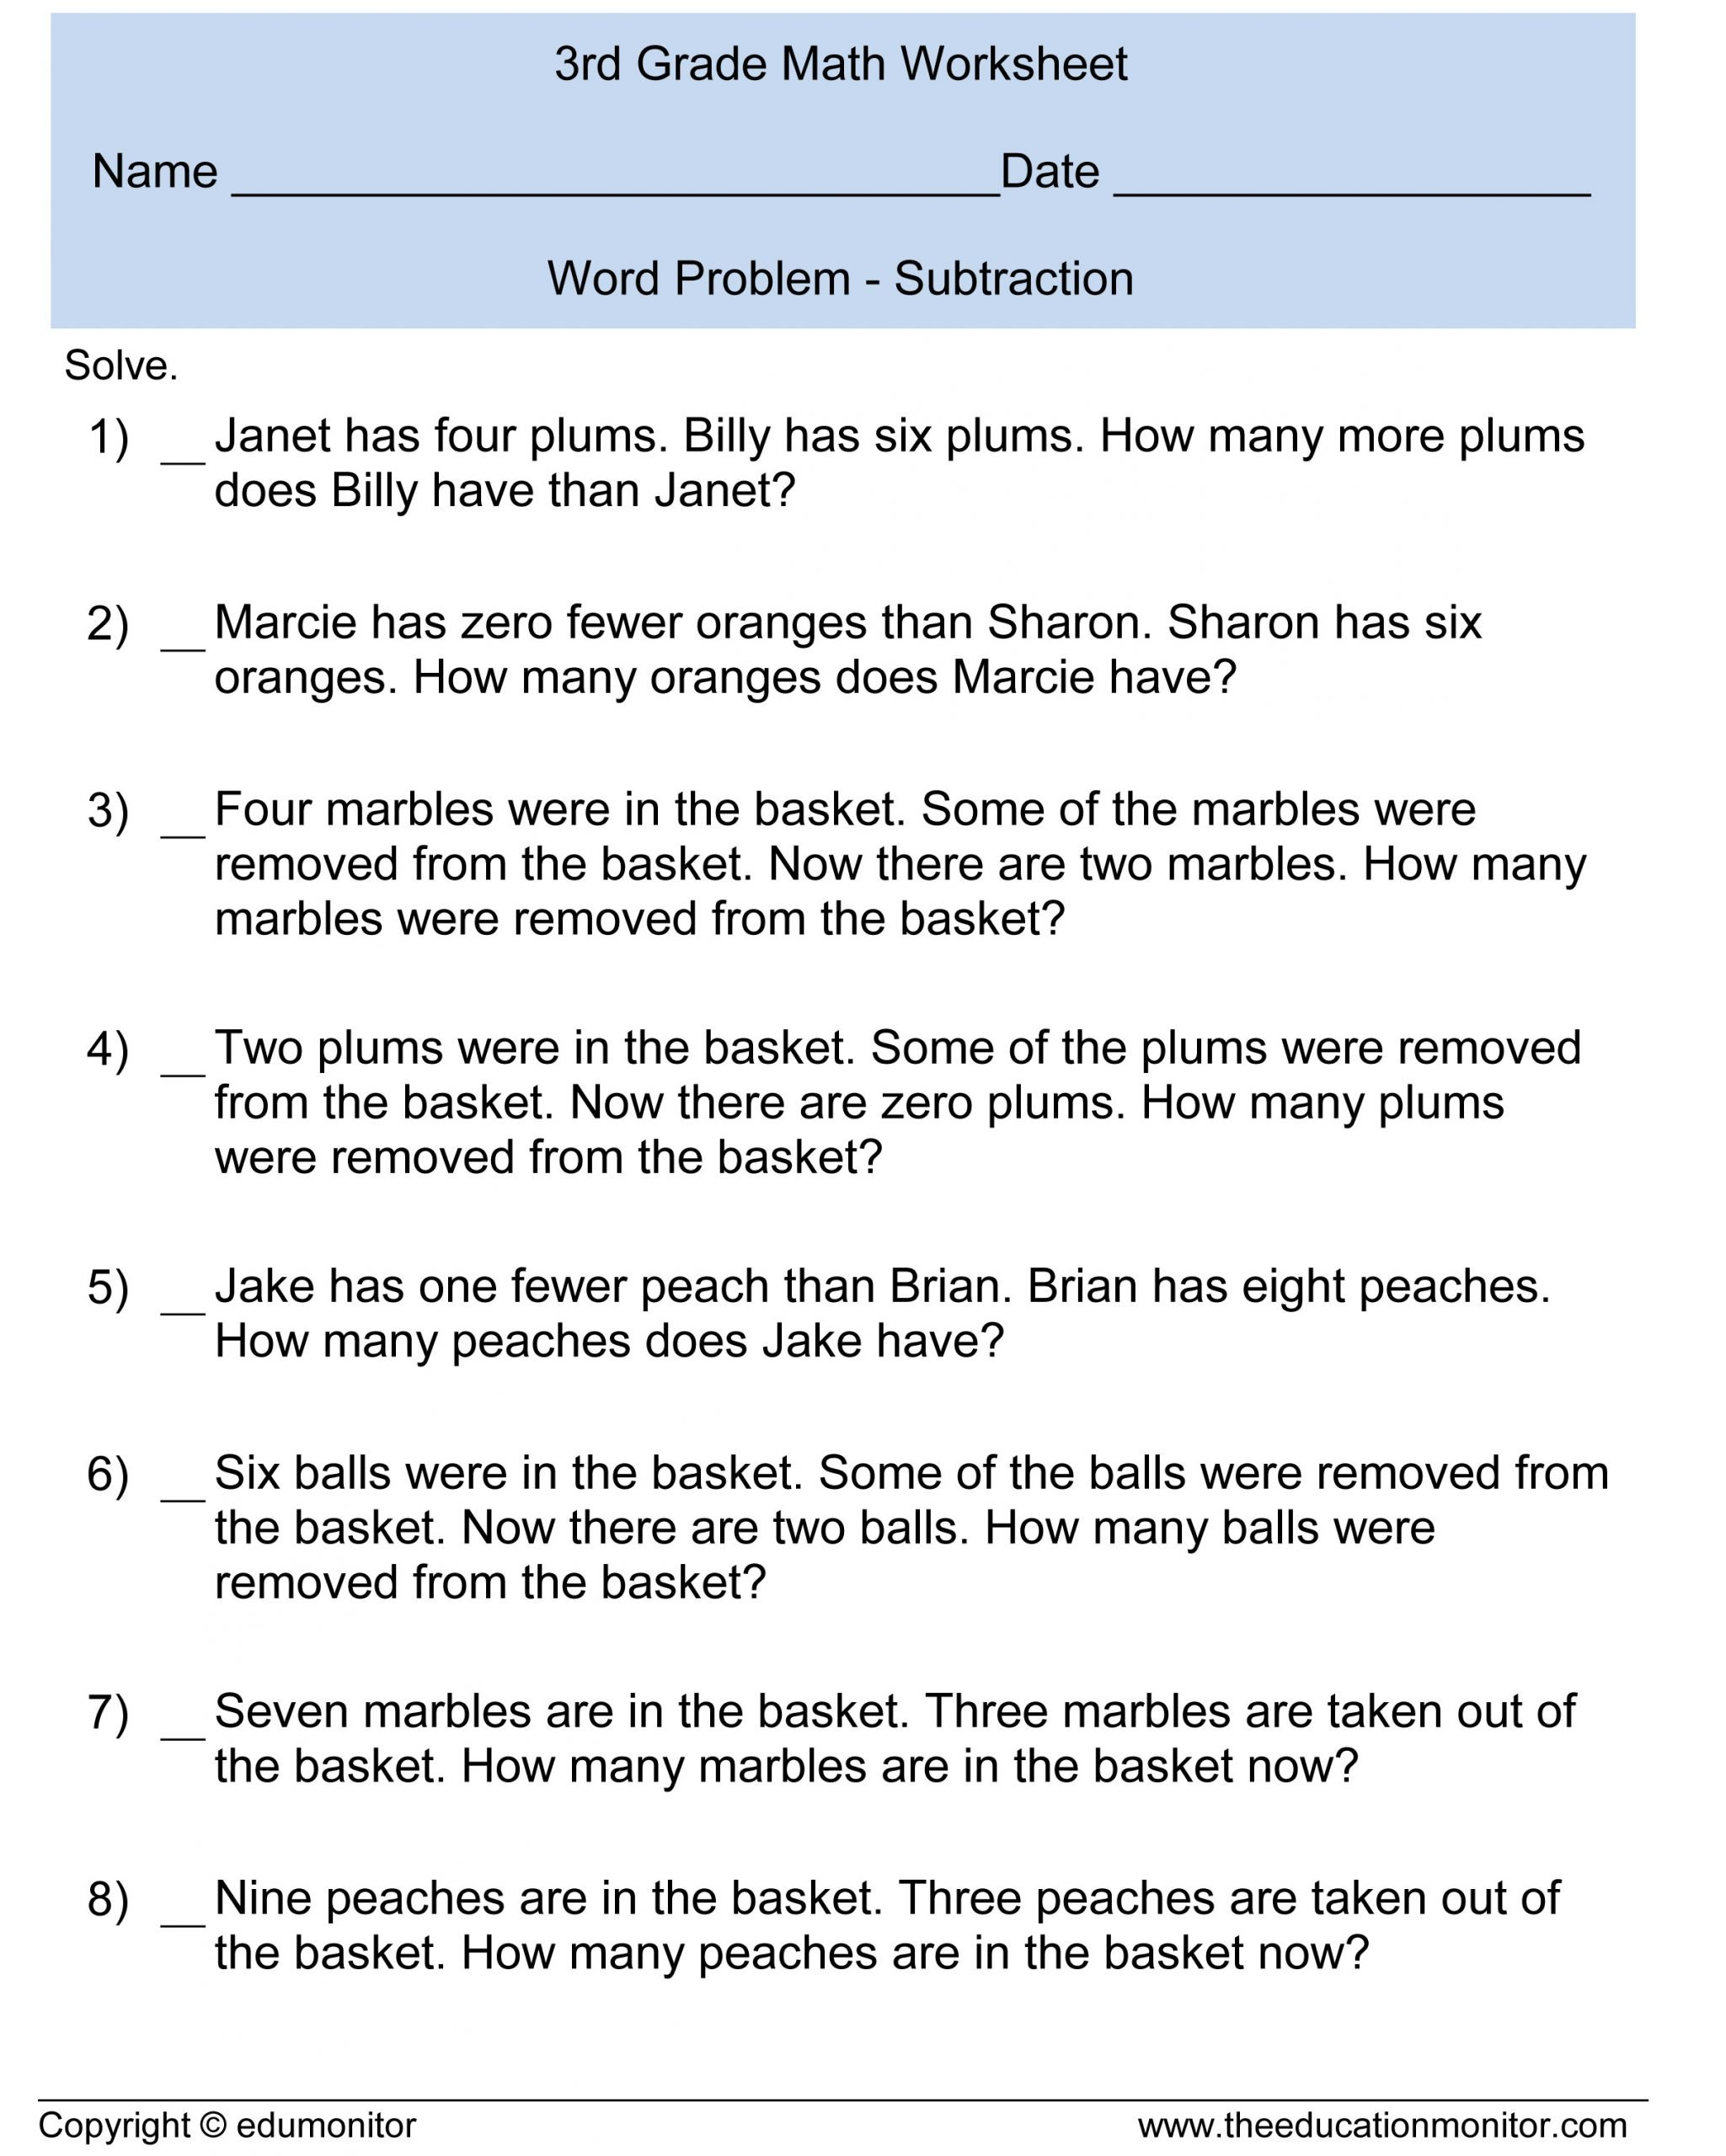 Word Problems Worksheets for Kindergarten Kindergarten Word Problems Worksheets Worksheets for Kids